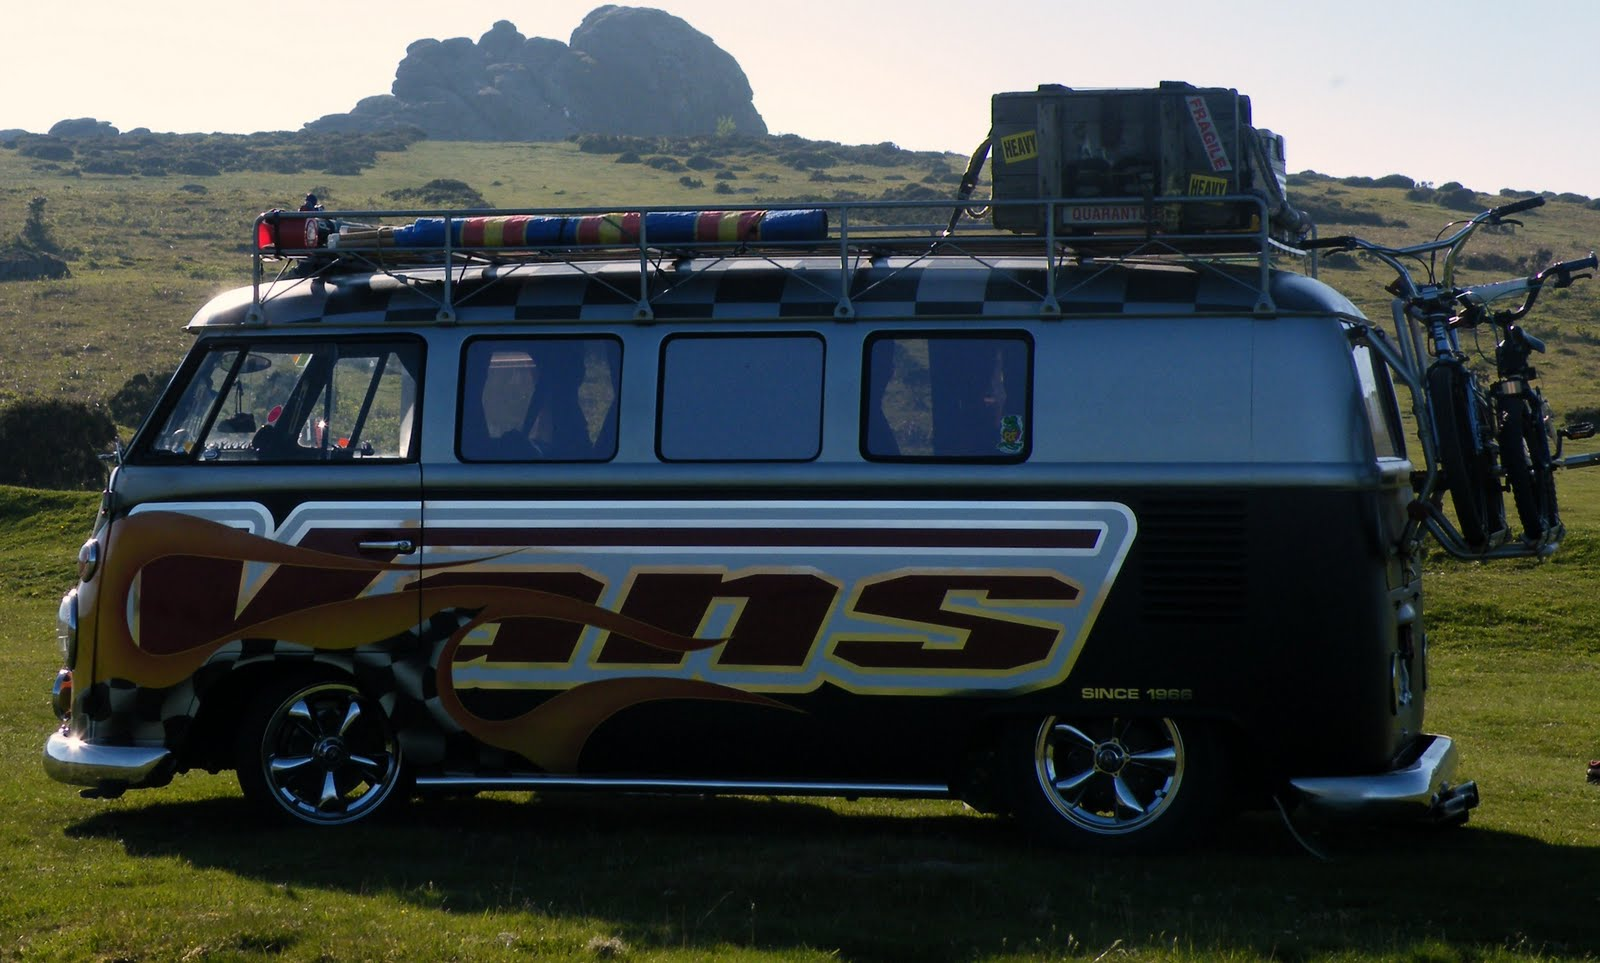 custom van Used conversion vans from classic vans are serviced, tested and verified to meet the needs of your business or family quality used custom vans for sale from chevy, ford, gmc and dodge.